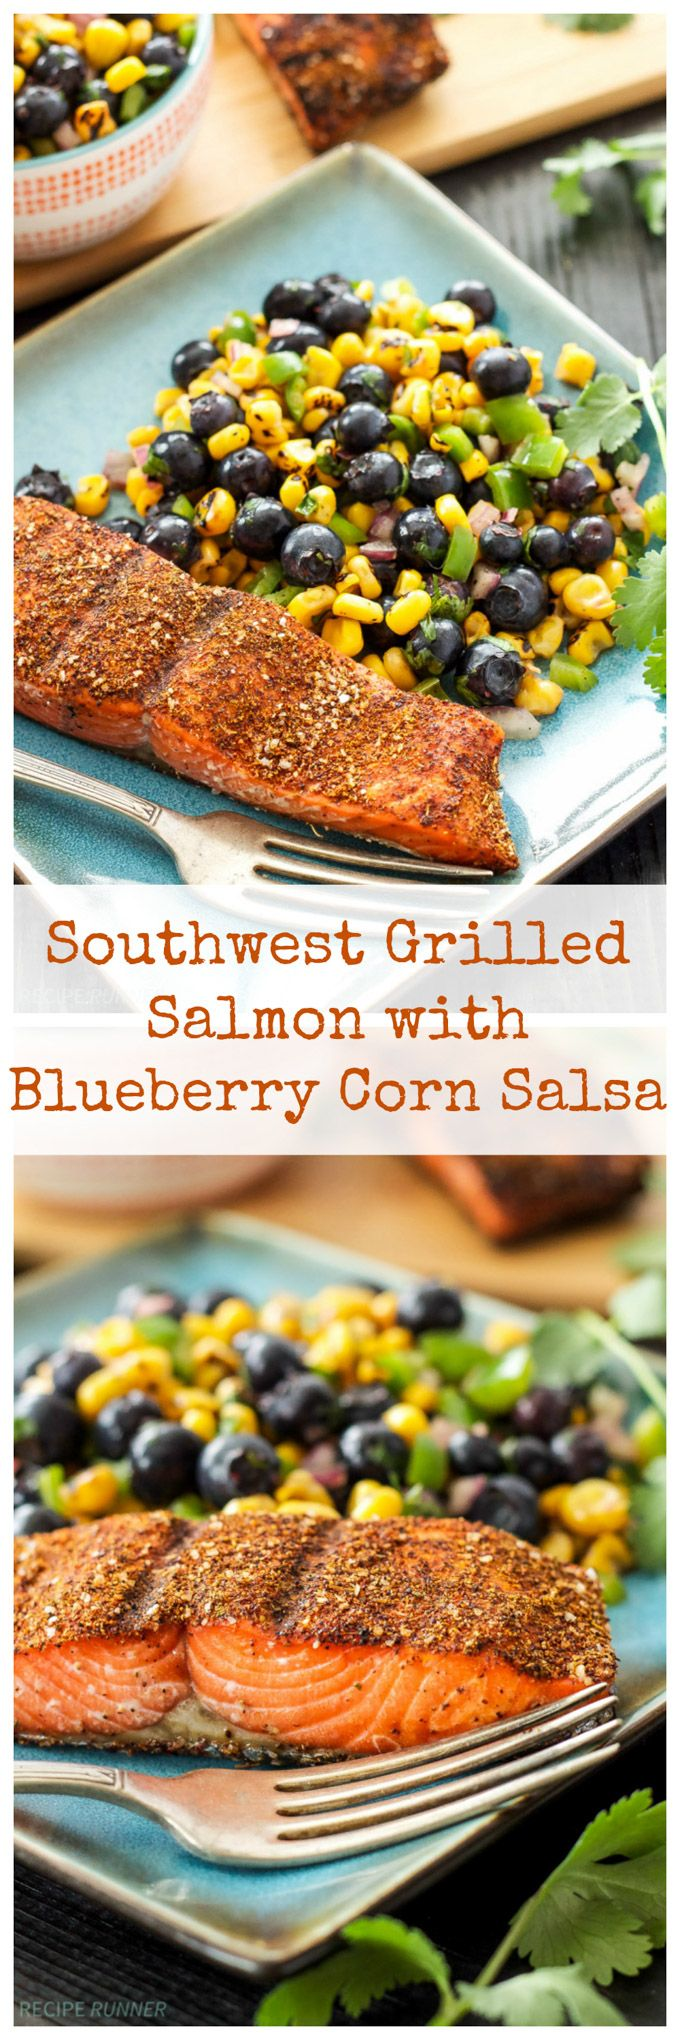 Southwest Grilled Salmon with Blueberry Corn Salsa | Blueberry and corn salsa is the perfect side dish alongside this grilled salmon!